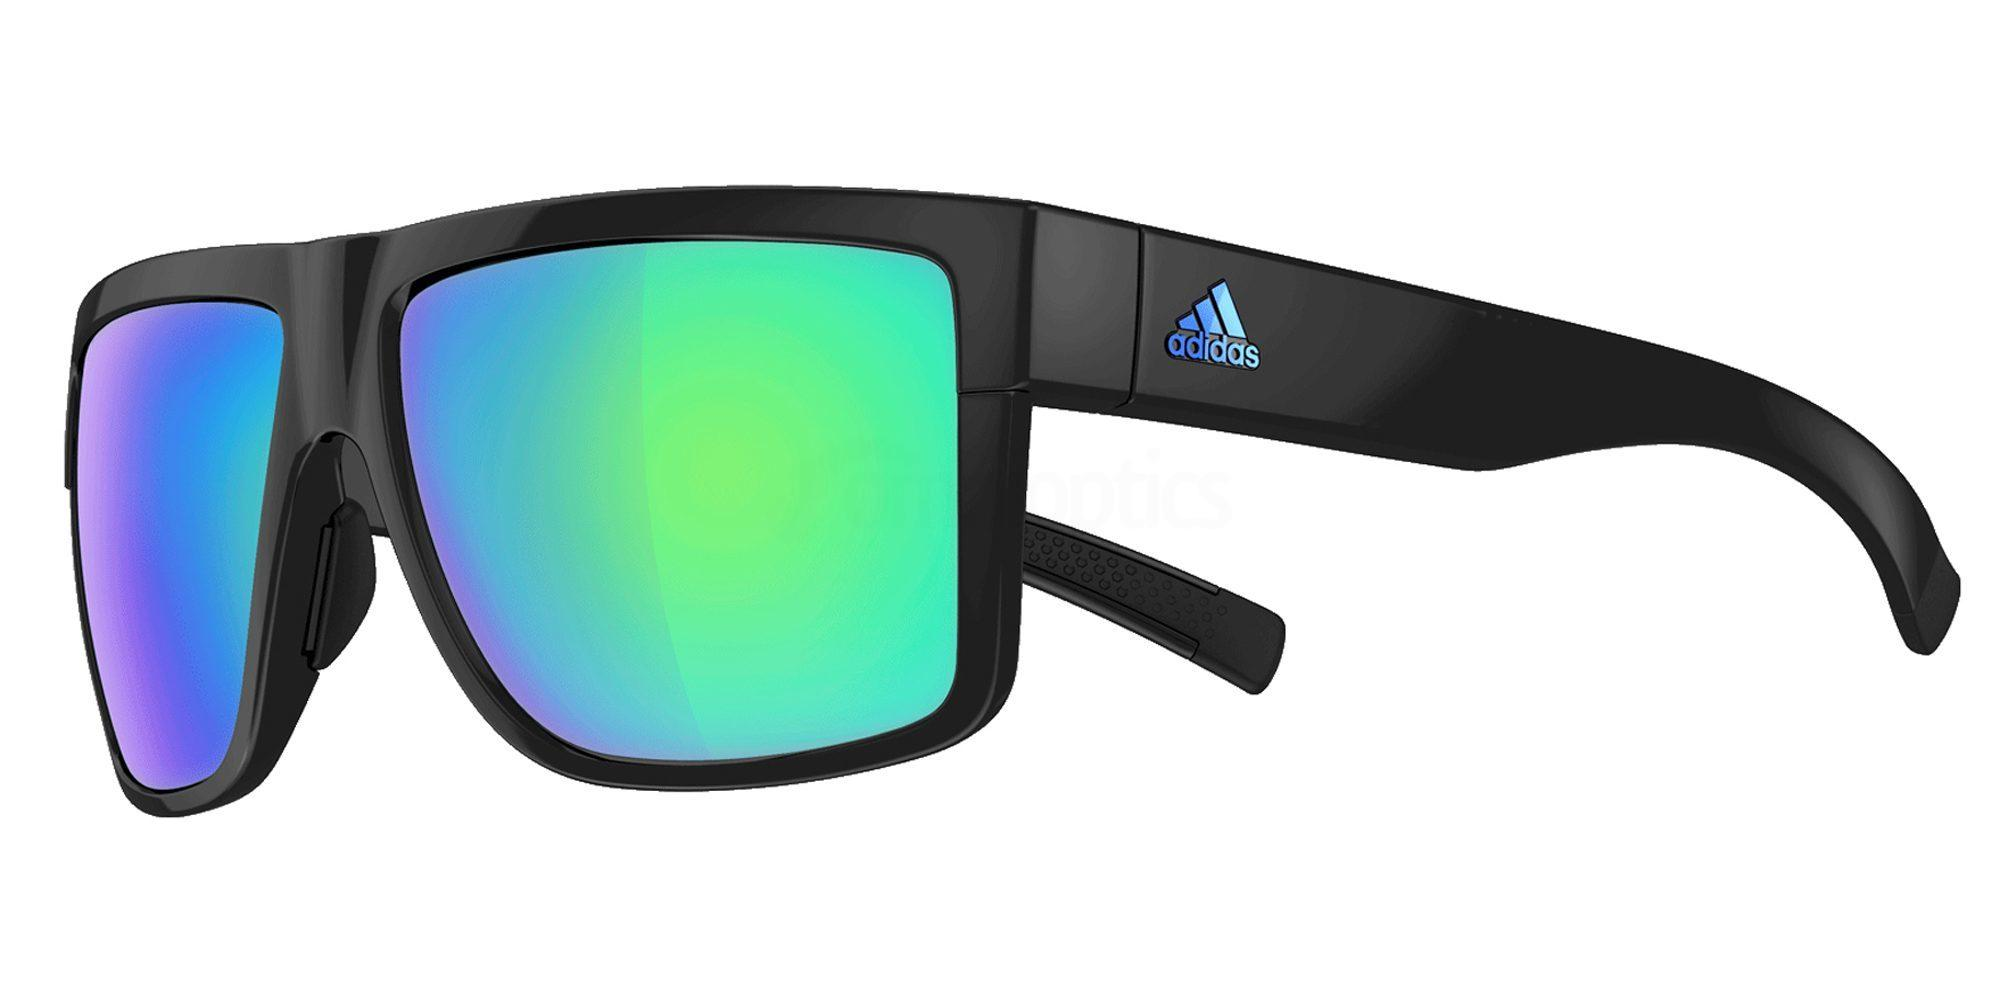 a427 00 6054 a427 3matic Sunglasses, Adidas